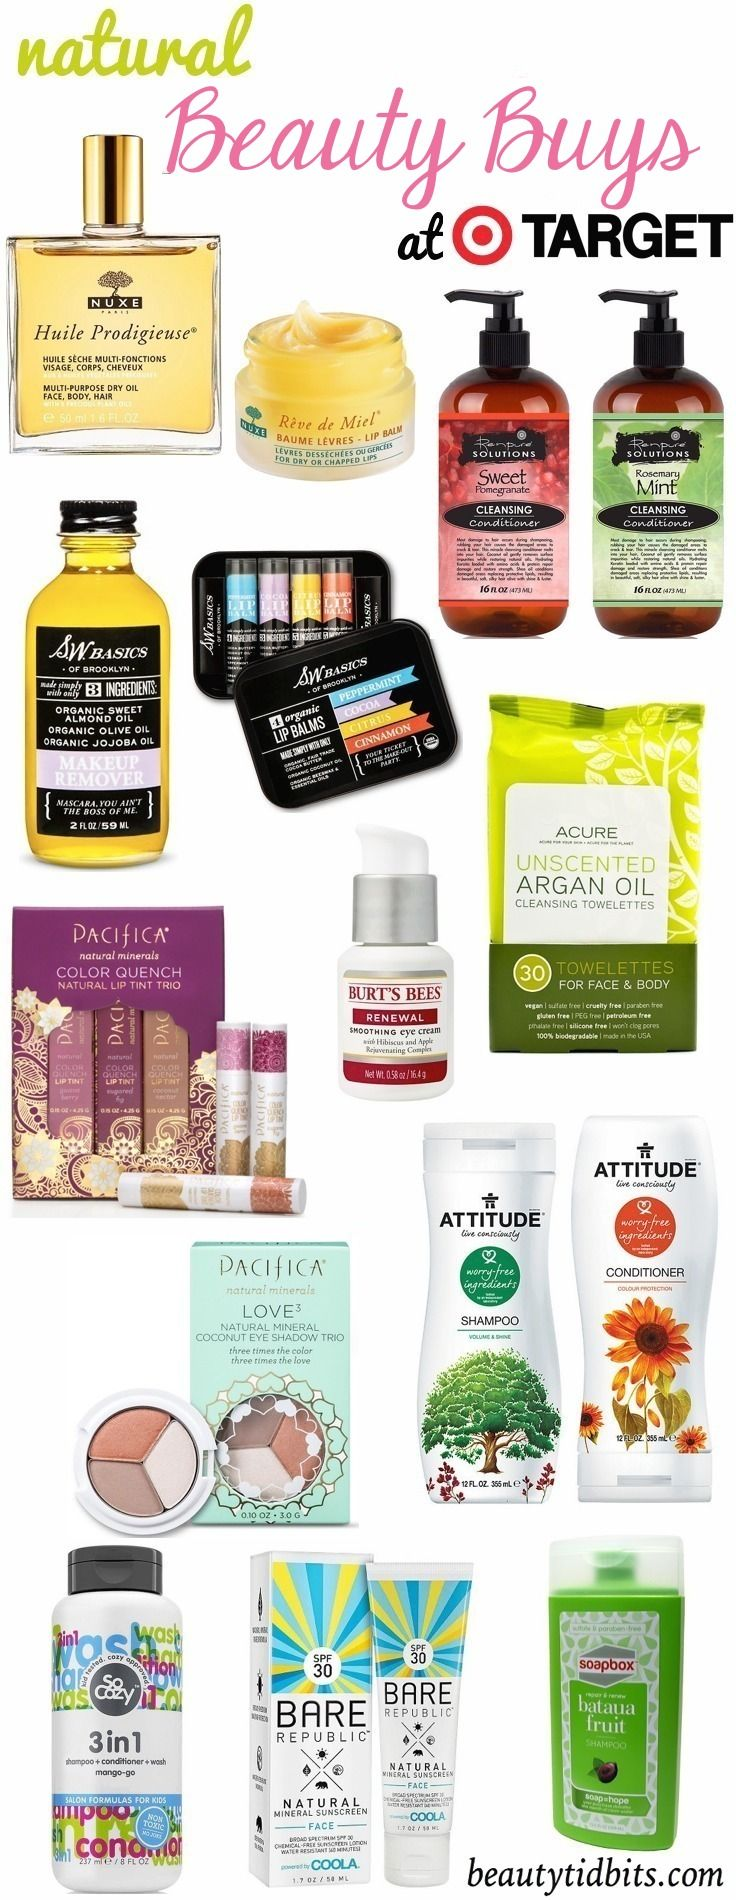 Natural Beauty Buys at Target